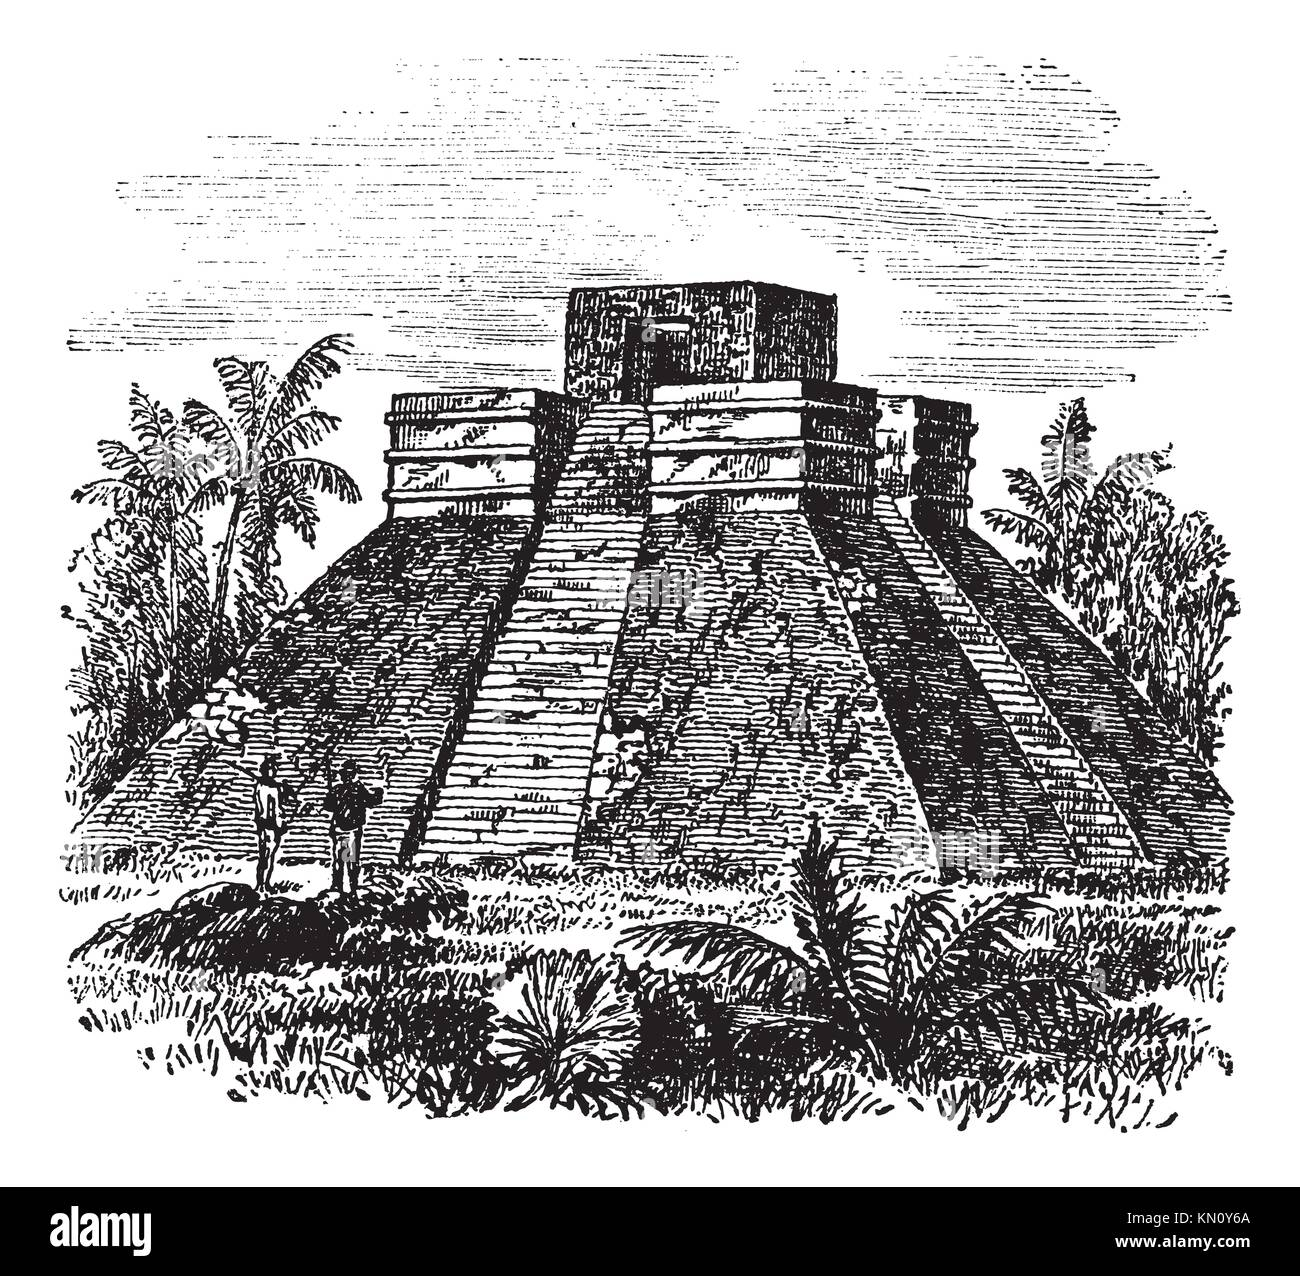 Palenque Pyramid temple in Mexico, during the 1890s, vintage engraving  Old engraved illustration of Palenque Pyramid - Stock Image